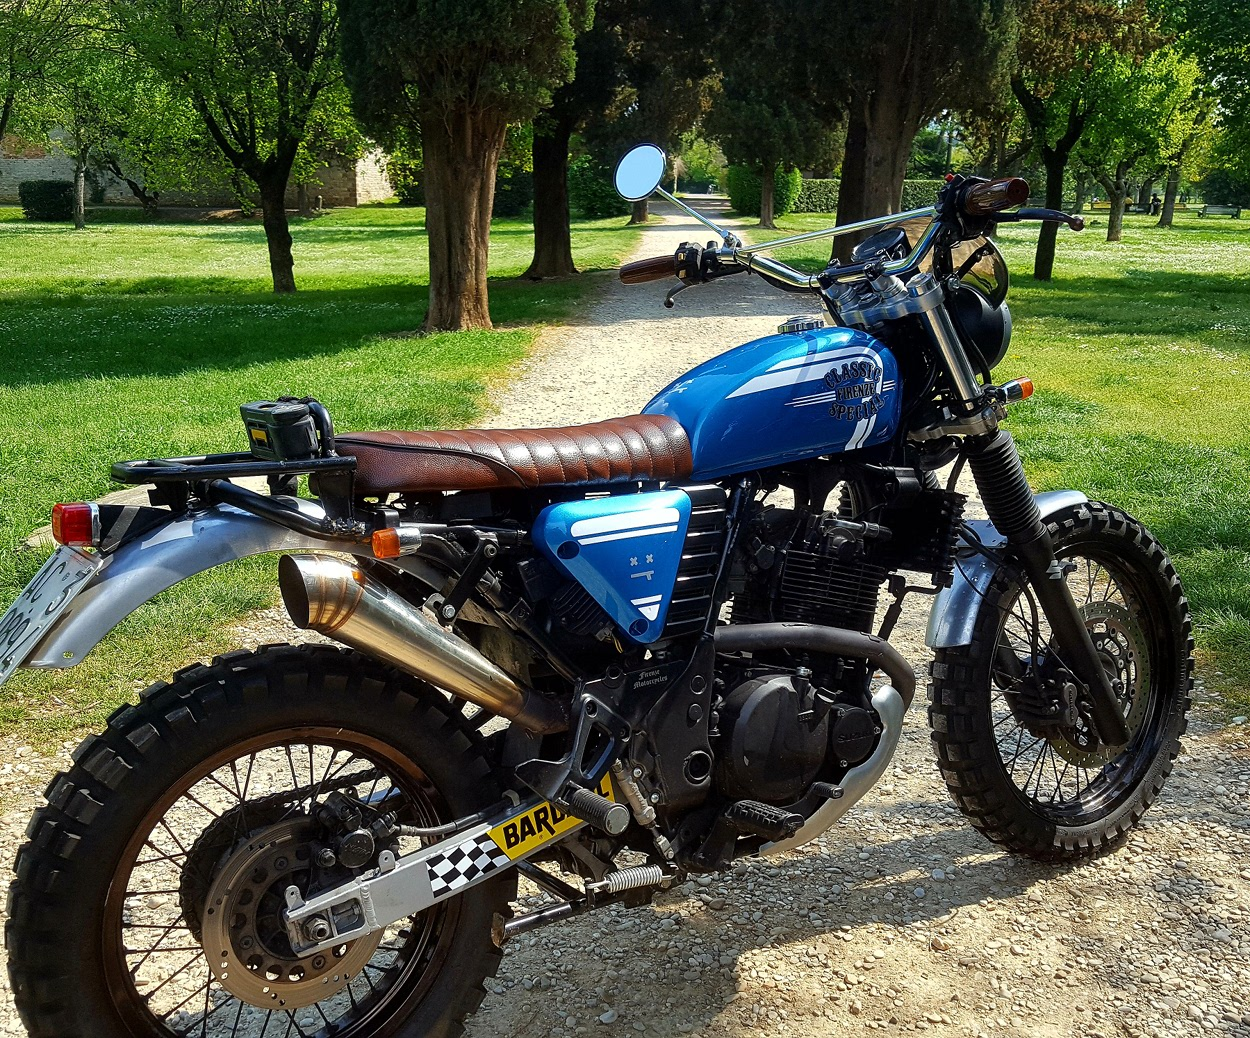 The Result Is A Modern Scrambler Thats Not Only Aesthetically Pleased But Athletic As Well To Date Marco Has Taken Bike On Long Trips Through